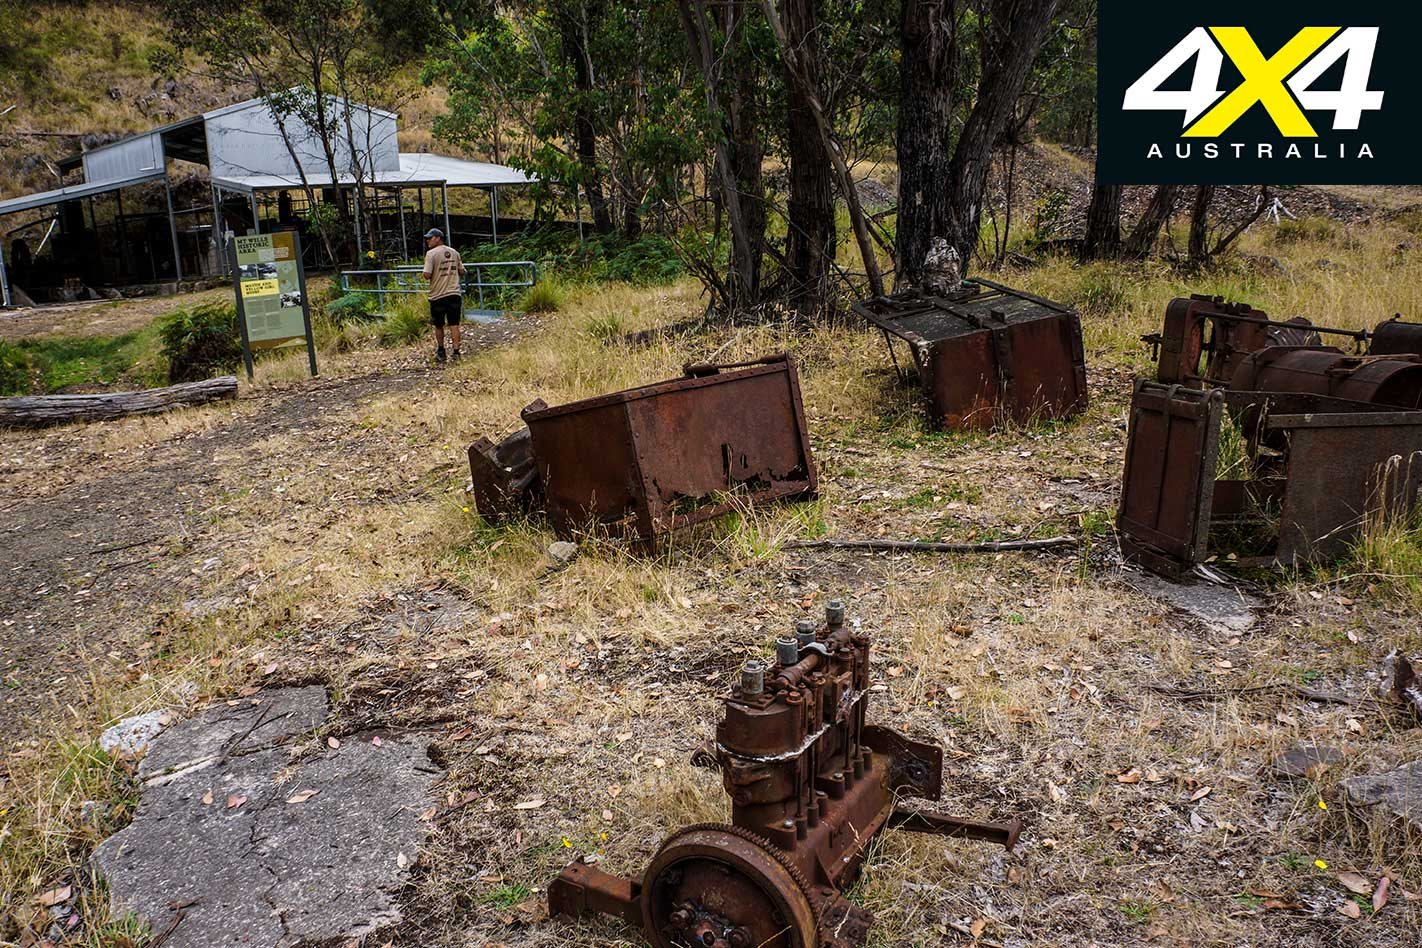 Victorian High Country part 2: 4x4 Adventure Series